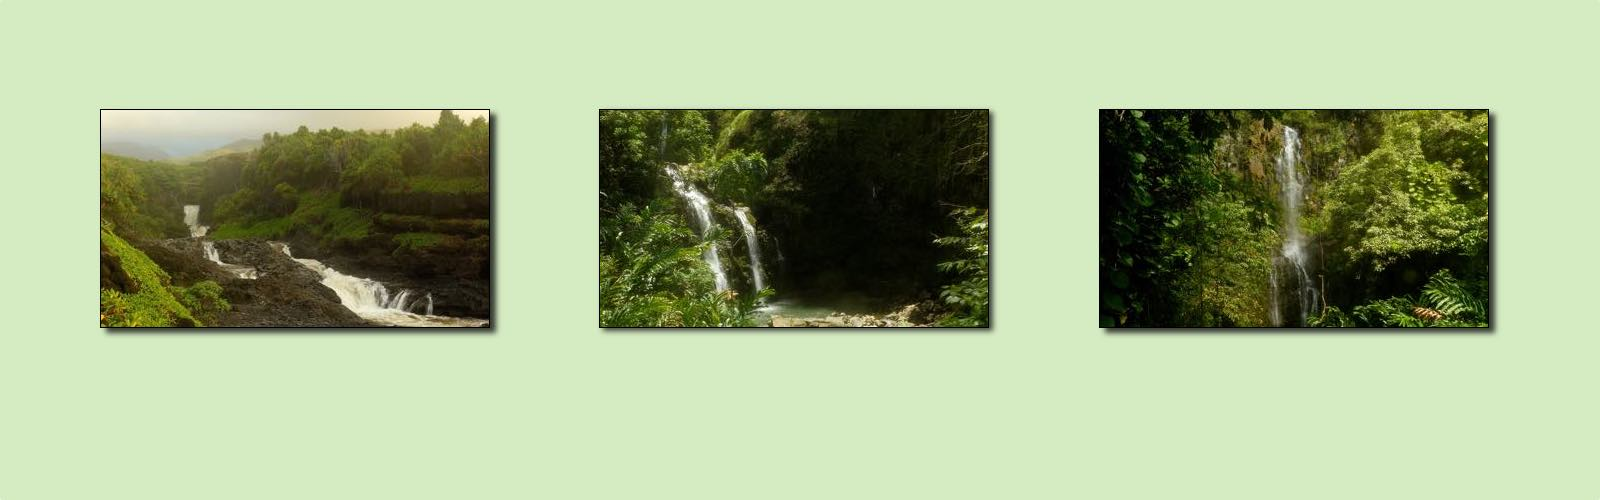 About - Waterfalls, Streams & Lakes